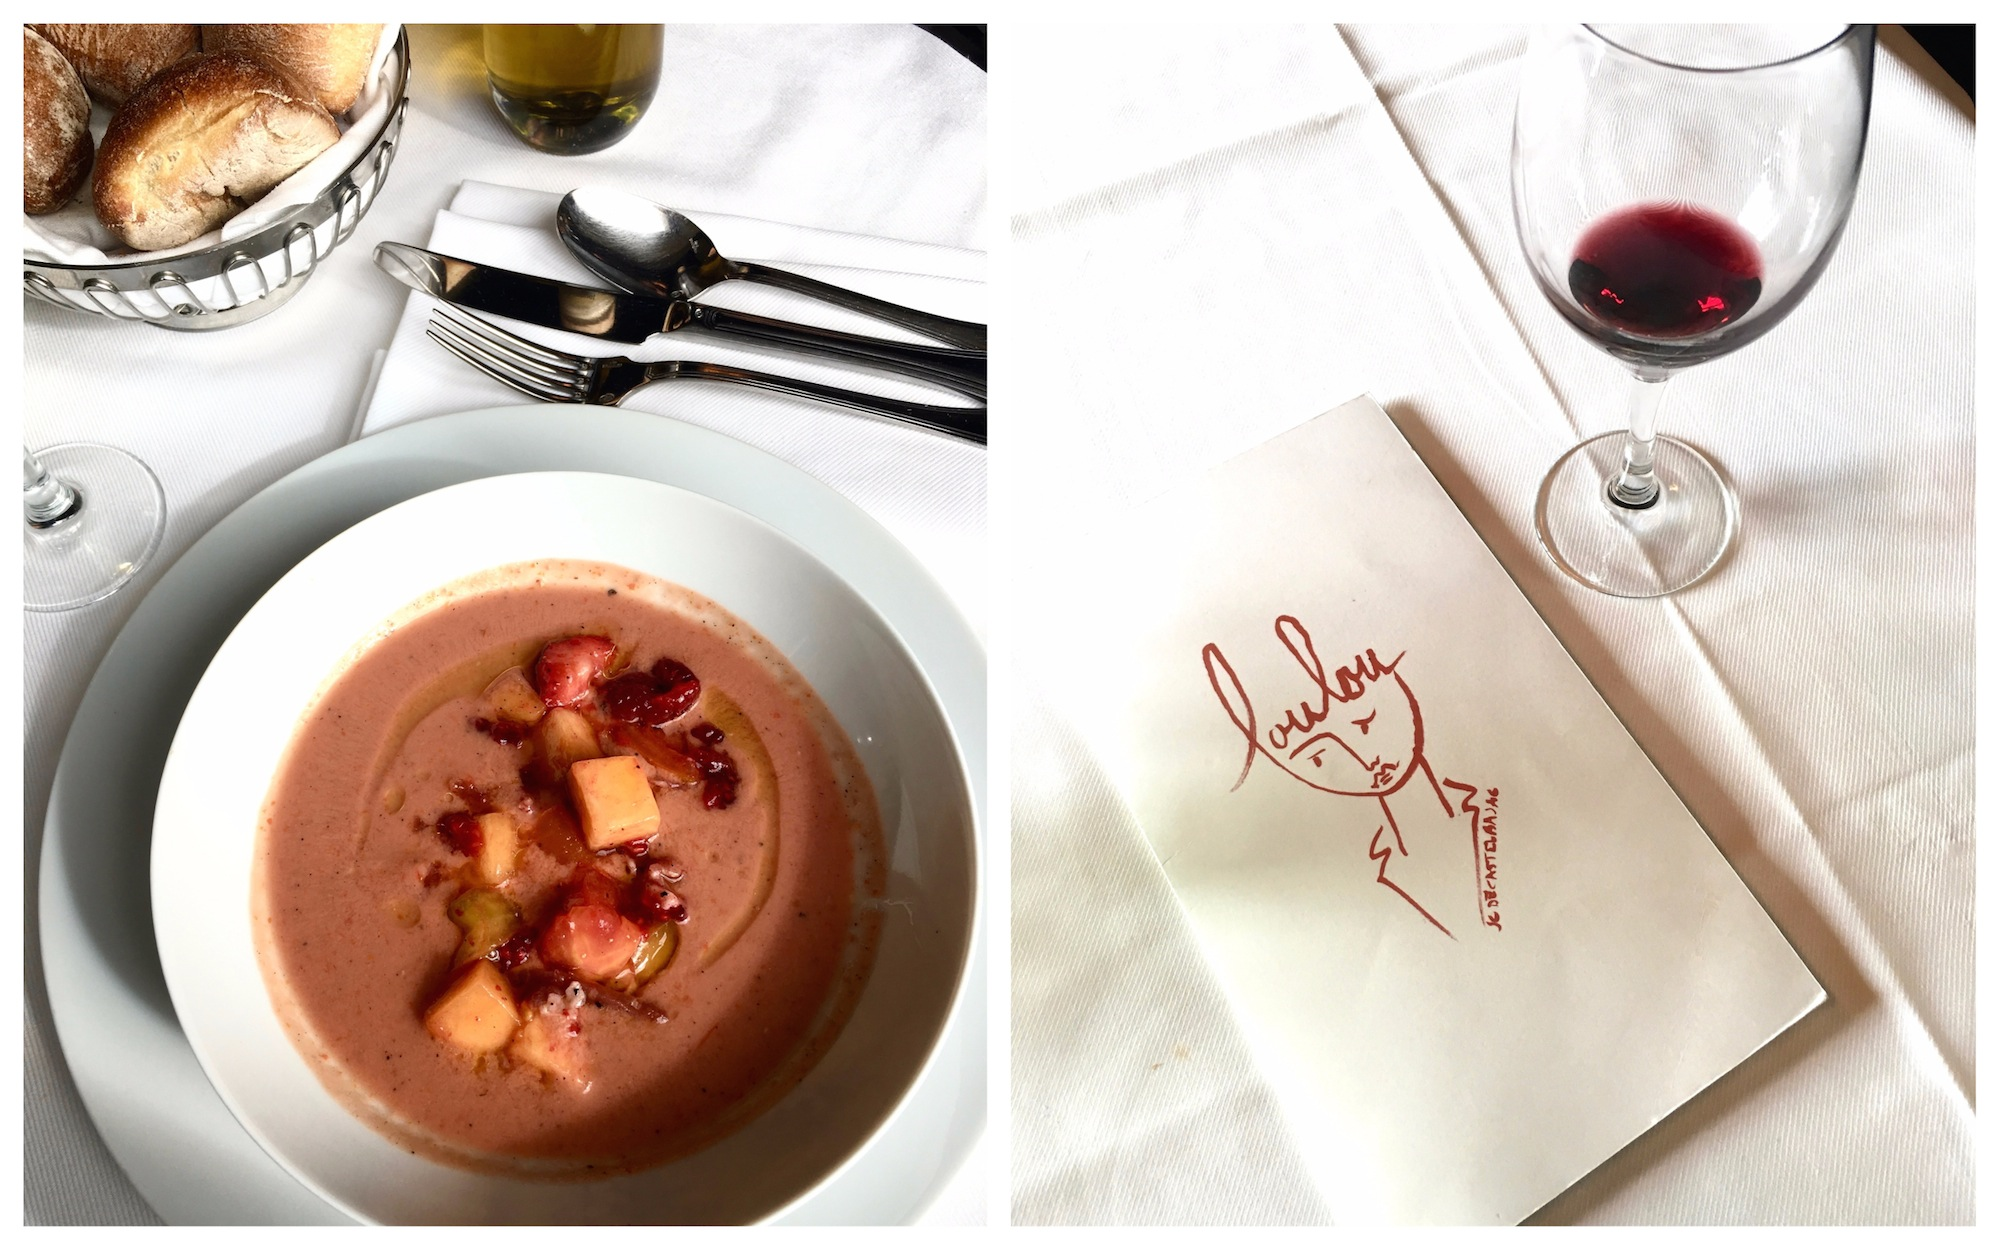 A fruit dessert at Loulou restaurant in Paris (left) and the menu with an empty glass of wine (right).